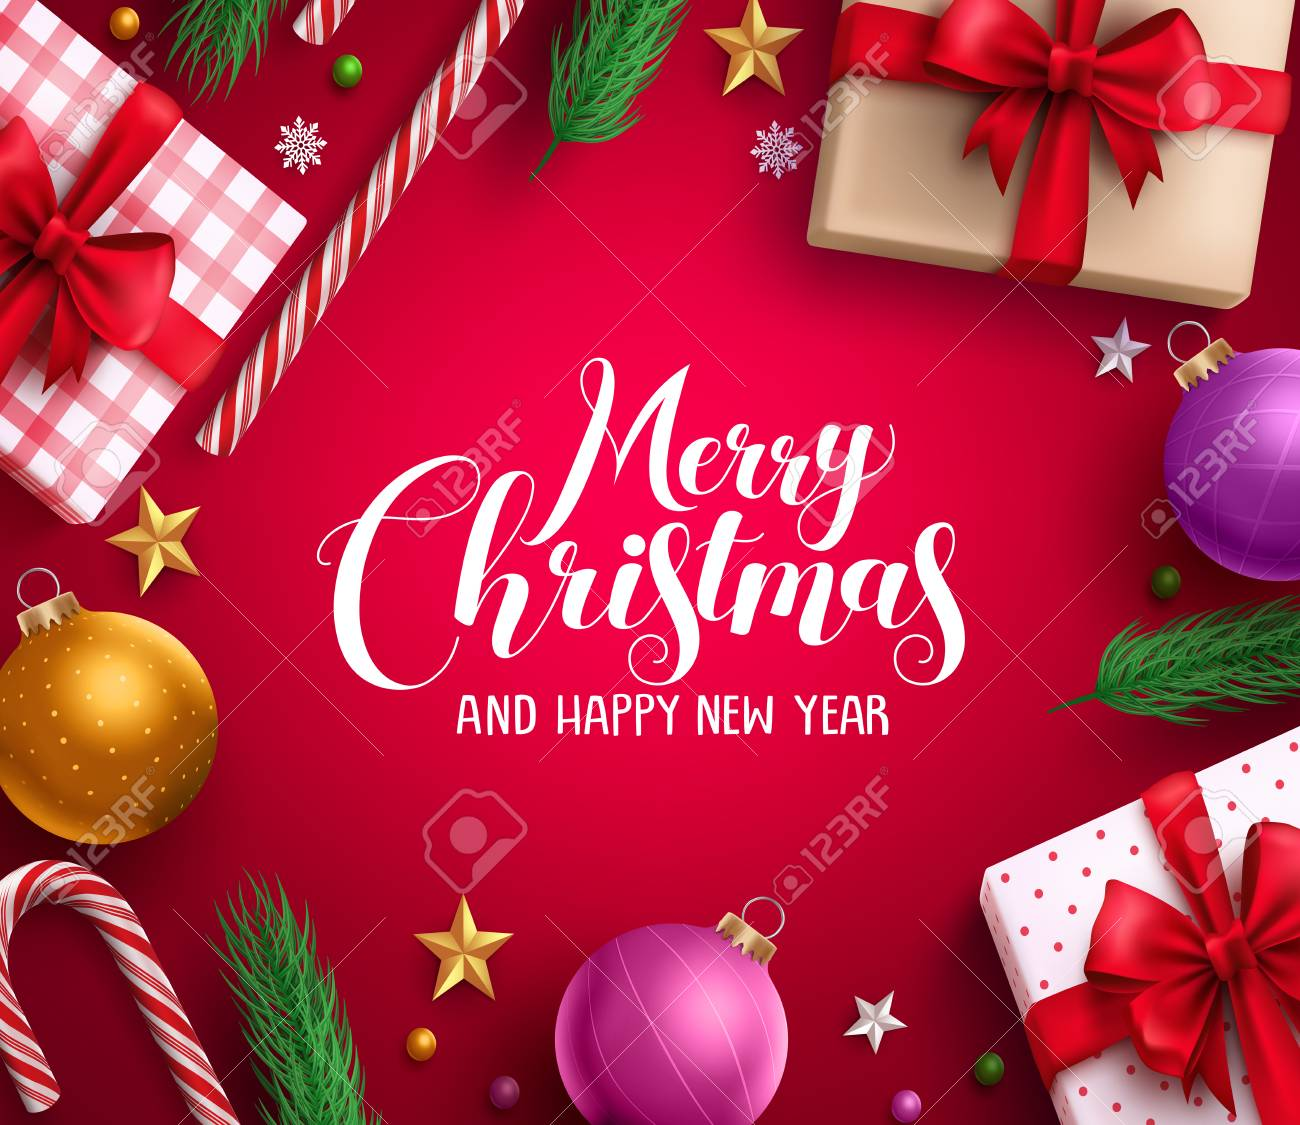 Christmas Greeting Cards.Christmas Card Vector Background With Merry Christmas Greeting